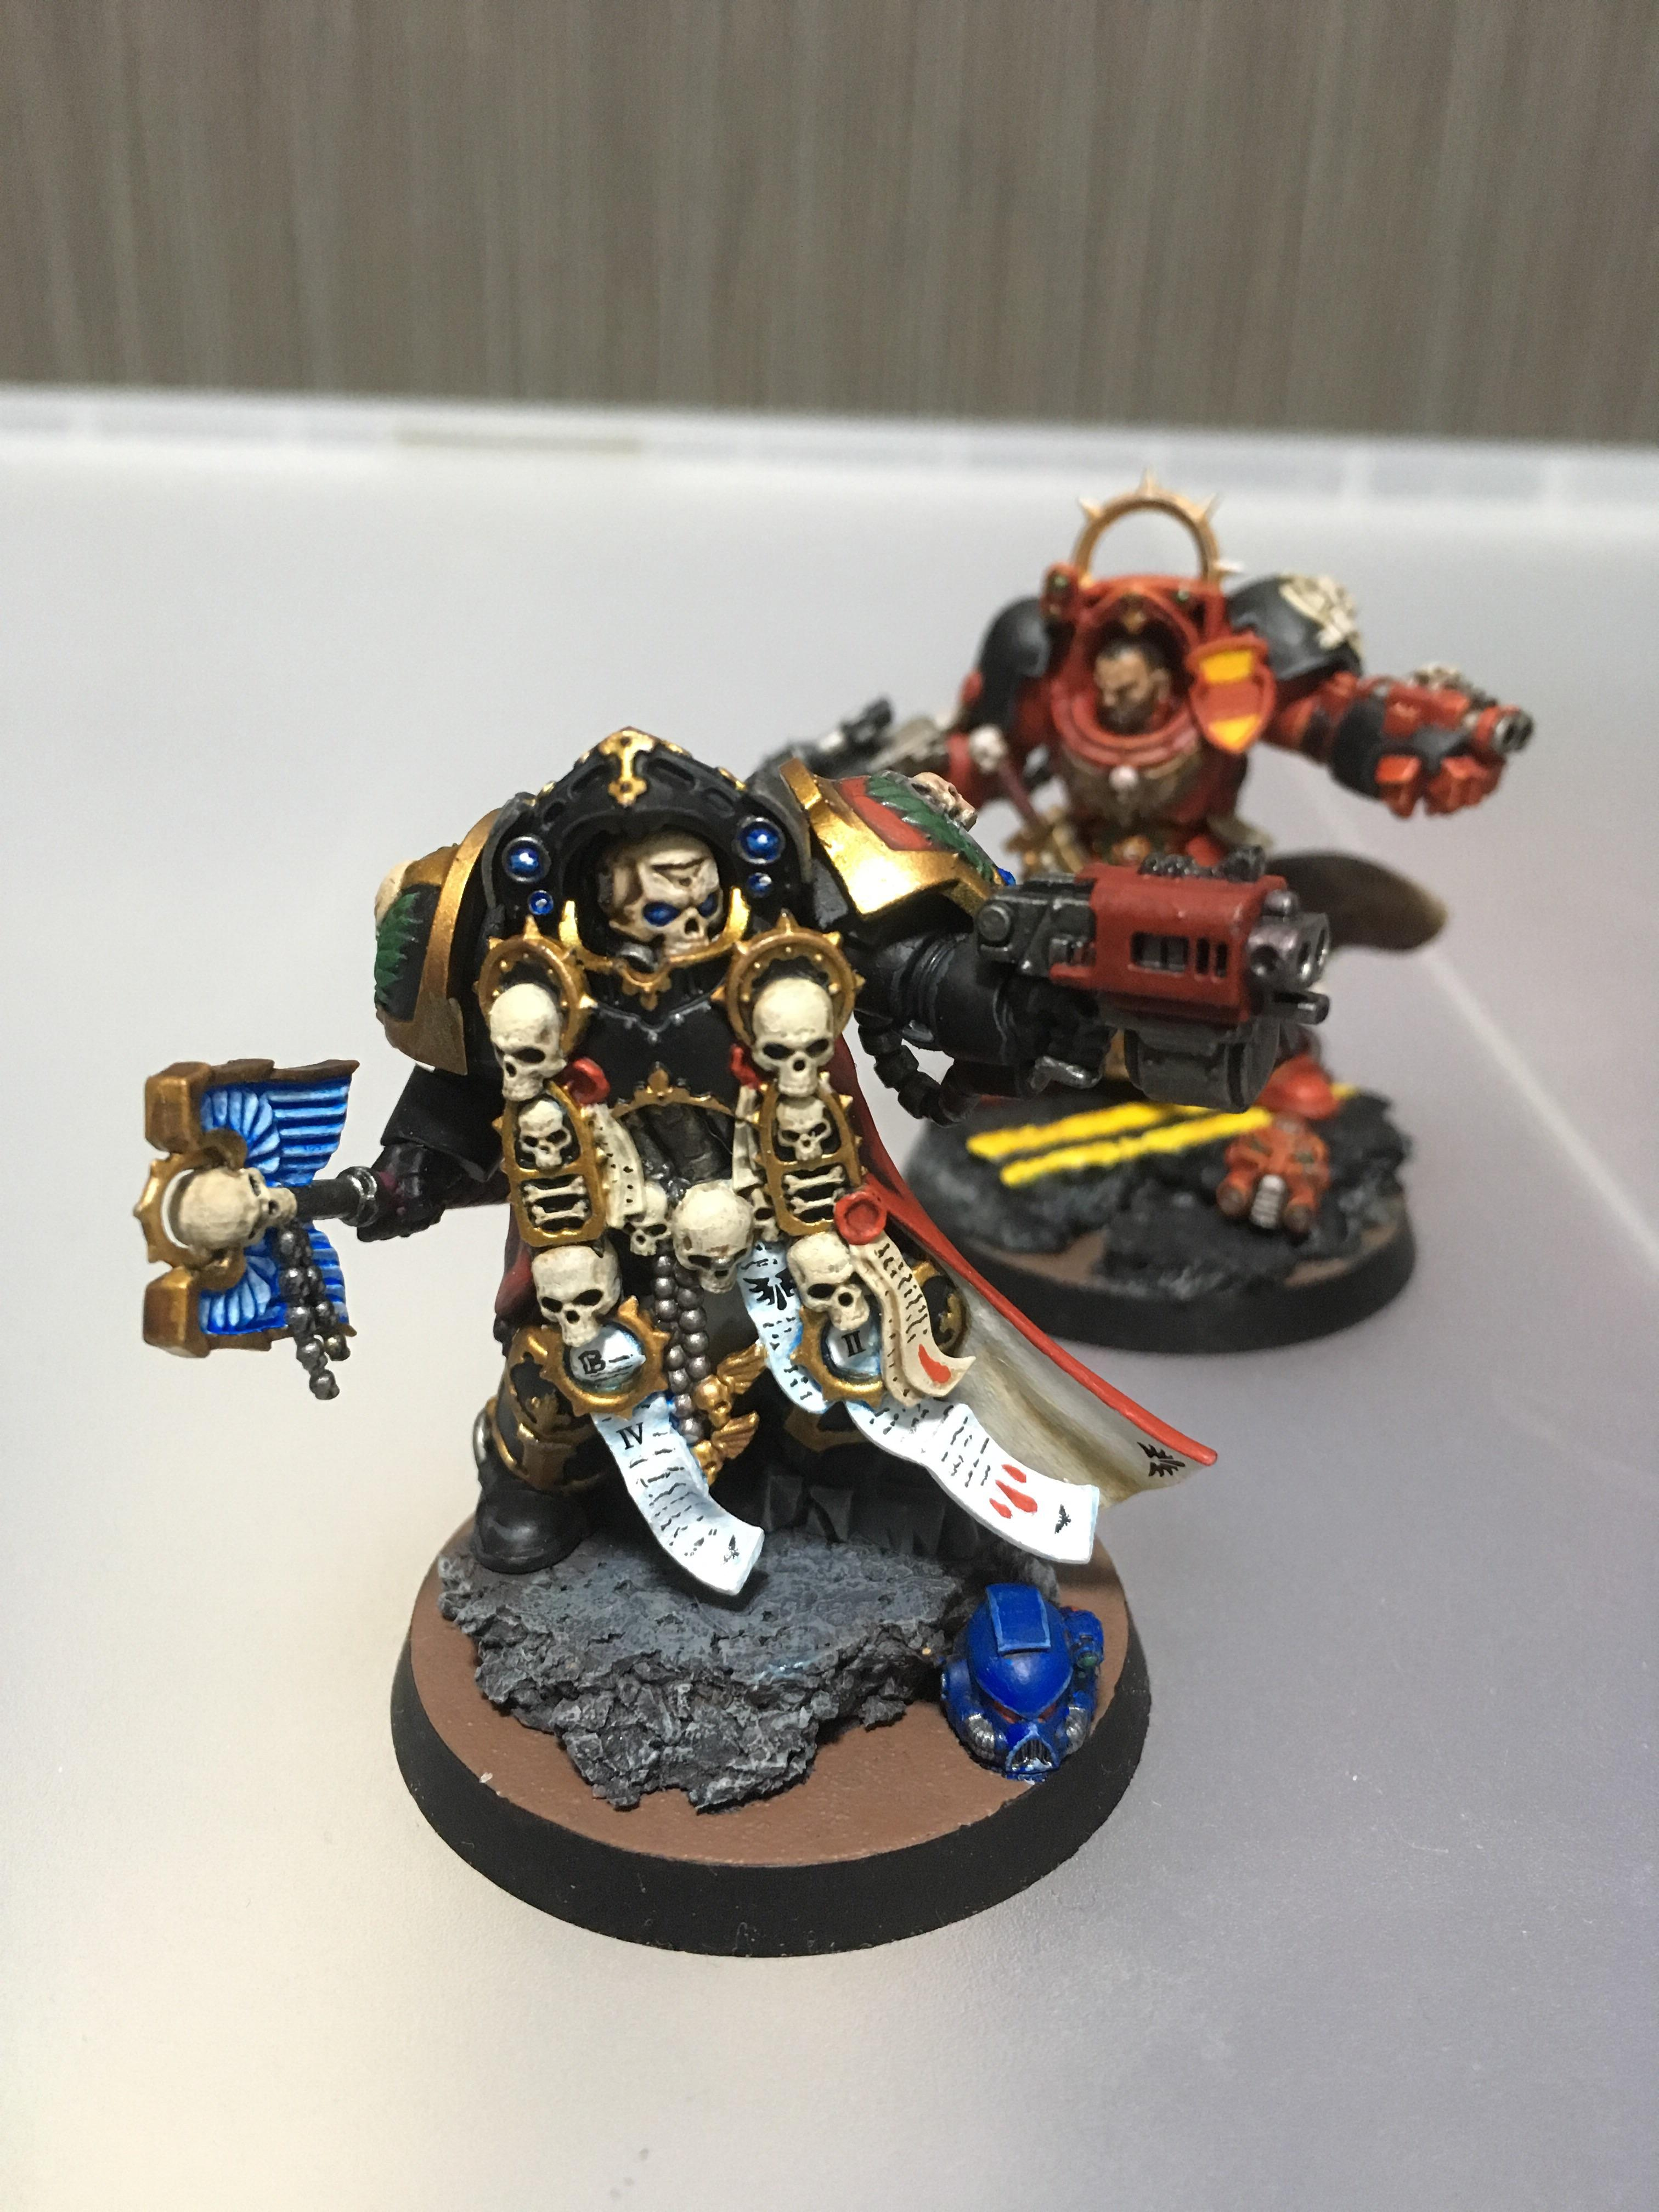 Just finished up my new store opening Chaplain in terminator 3024x4032